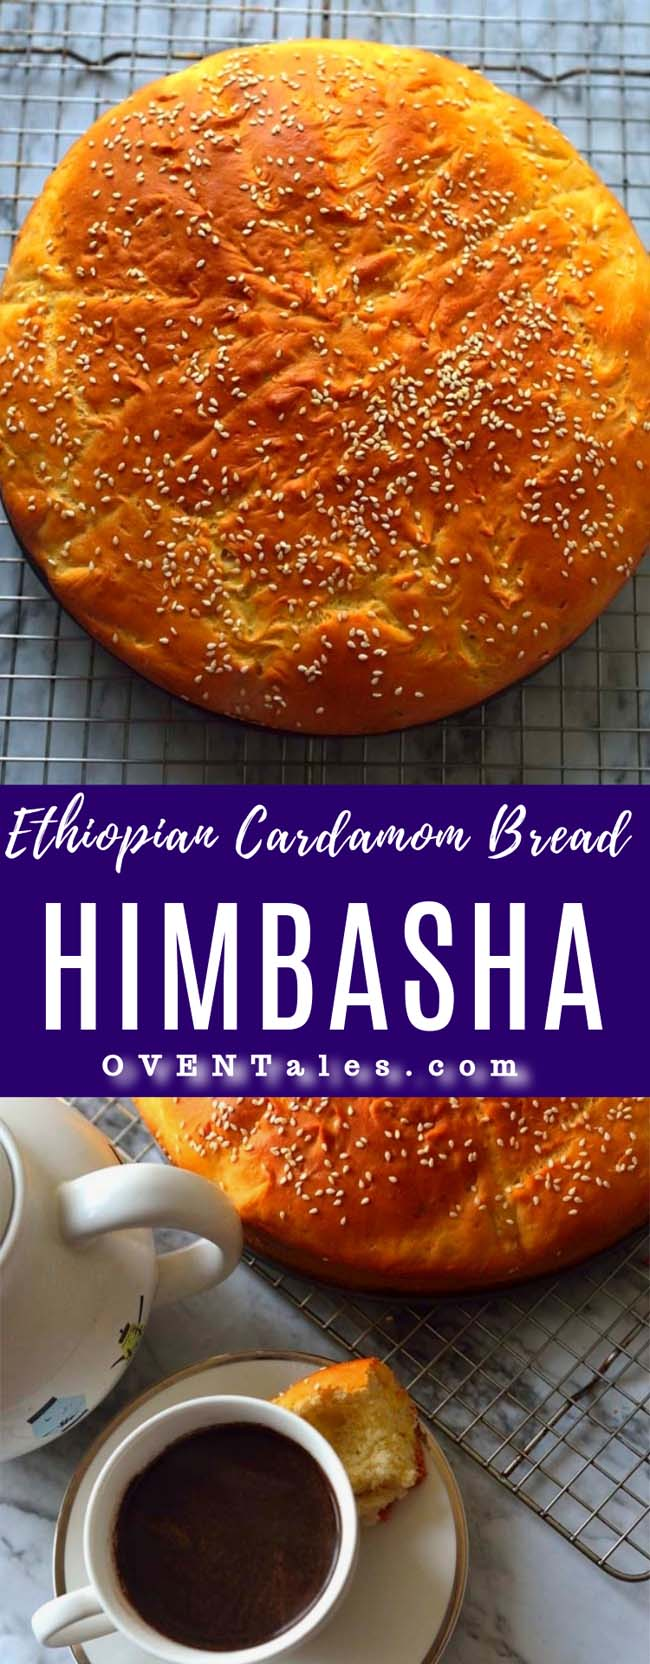 The Ethiopian and Eritrean Celebration bread lightly sweetened and flavored with cardamom